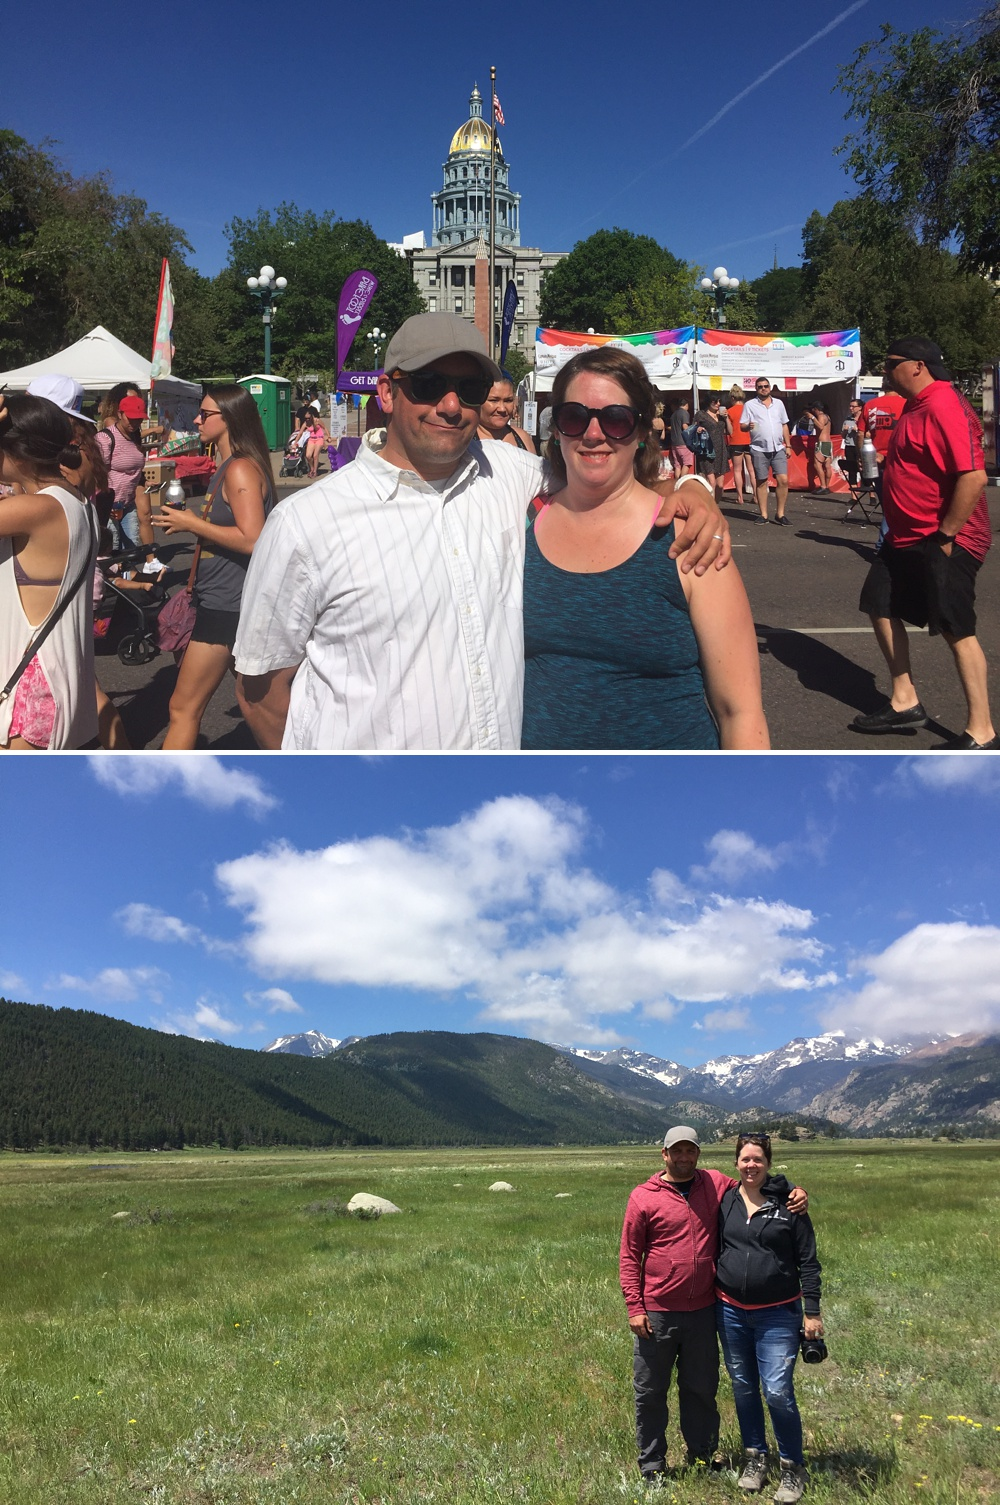 above: Max and me at PRIDE, Denver, and then in Rocky Mountain National Park